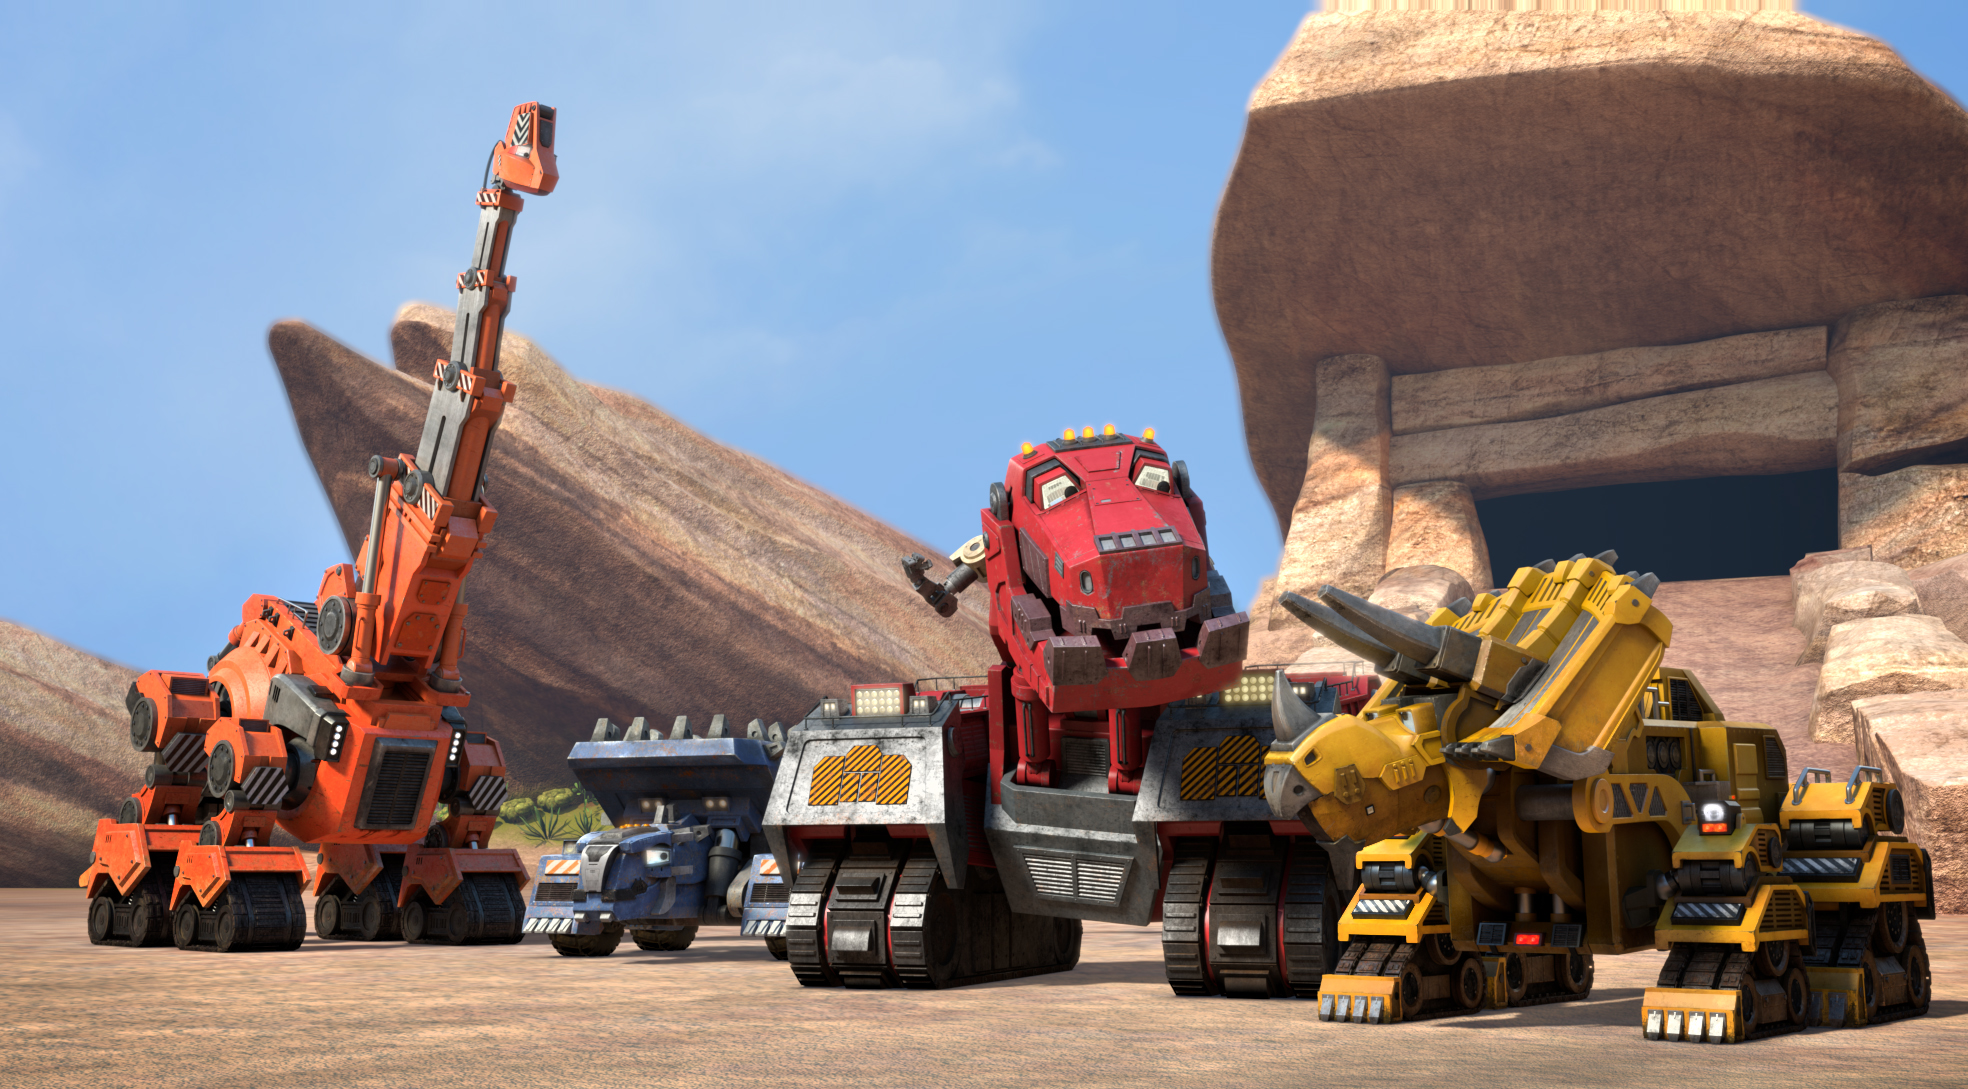 Some of the Dinotrux team: Skya, Ton-Ton, Ty Rux, and Dozer. (c) DreamWorks Animation